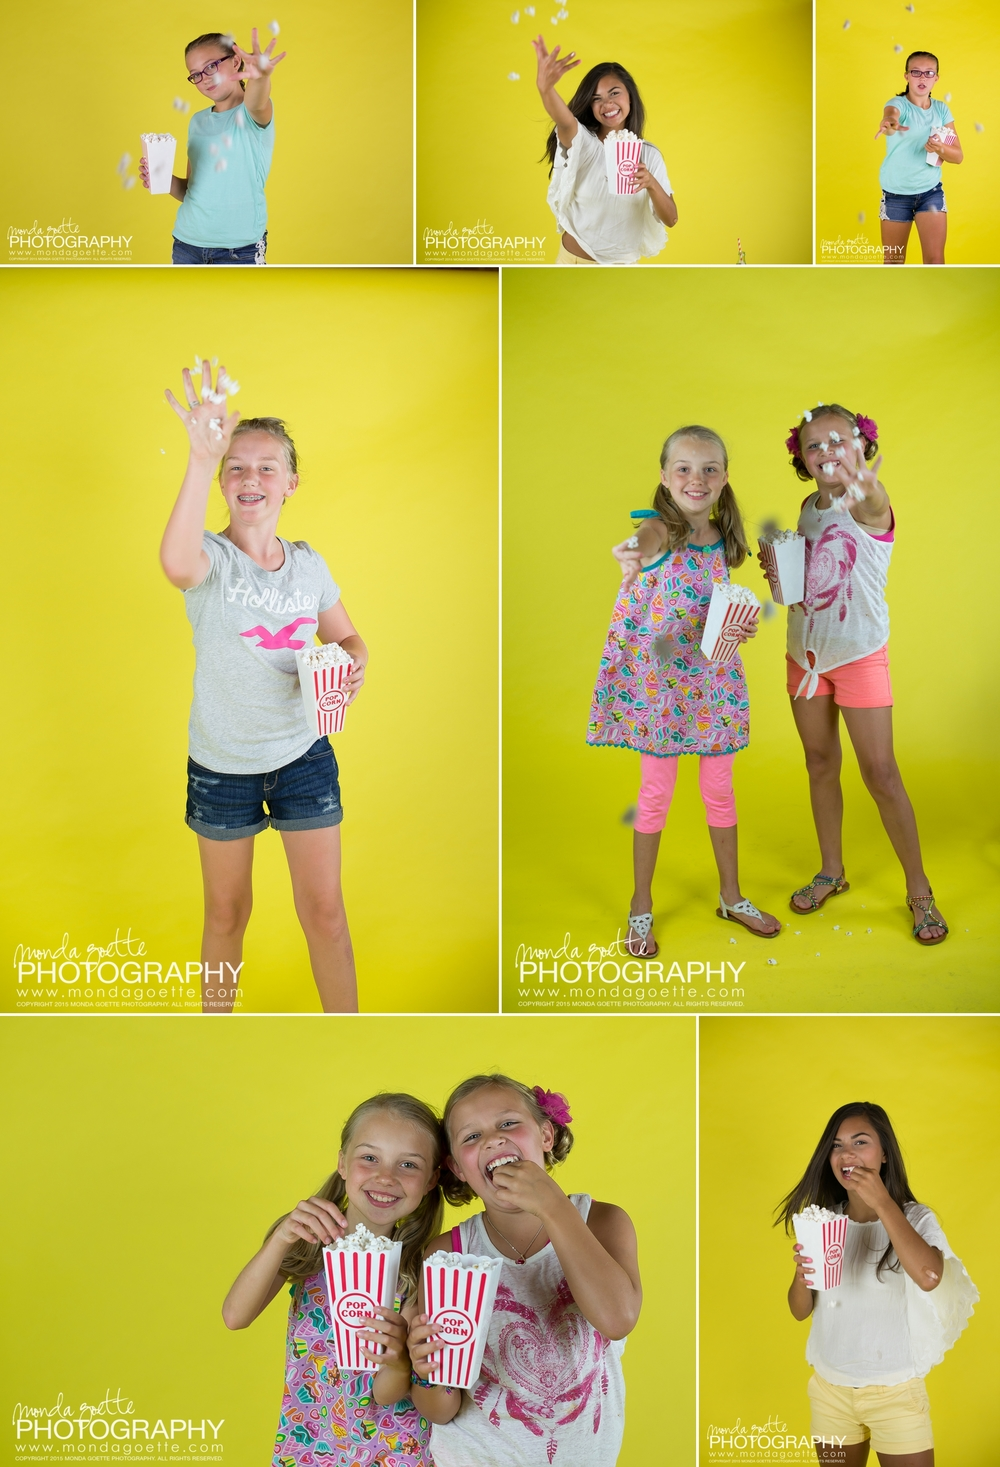 popcorn-candy-photosession-with-Monda-Goette-Photography